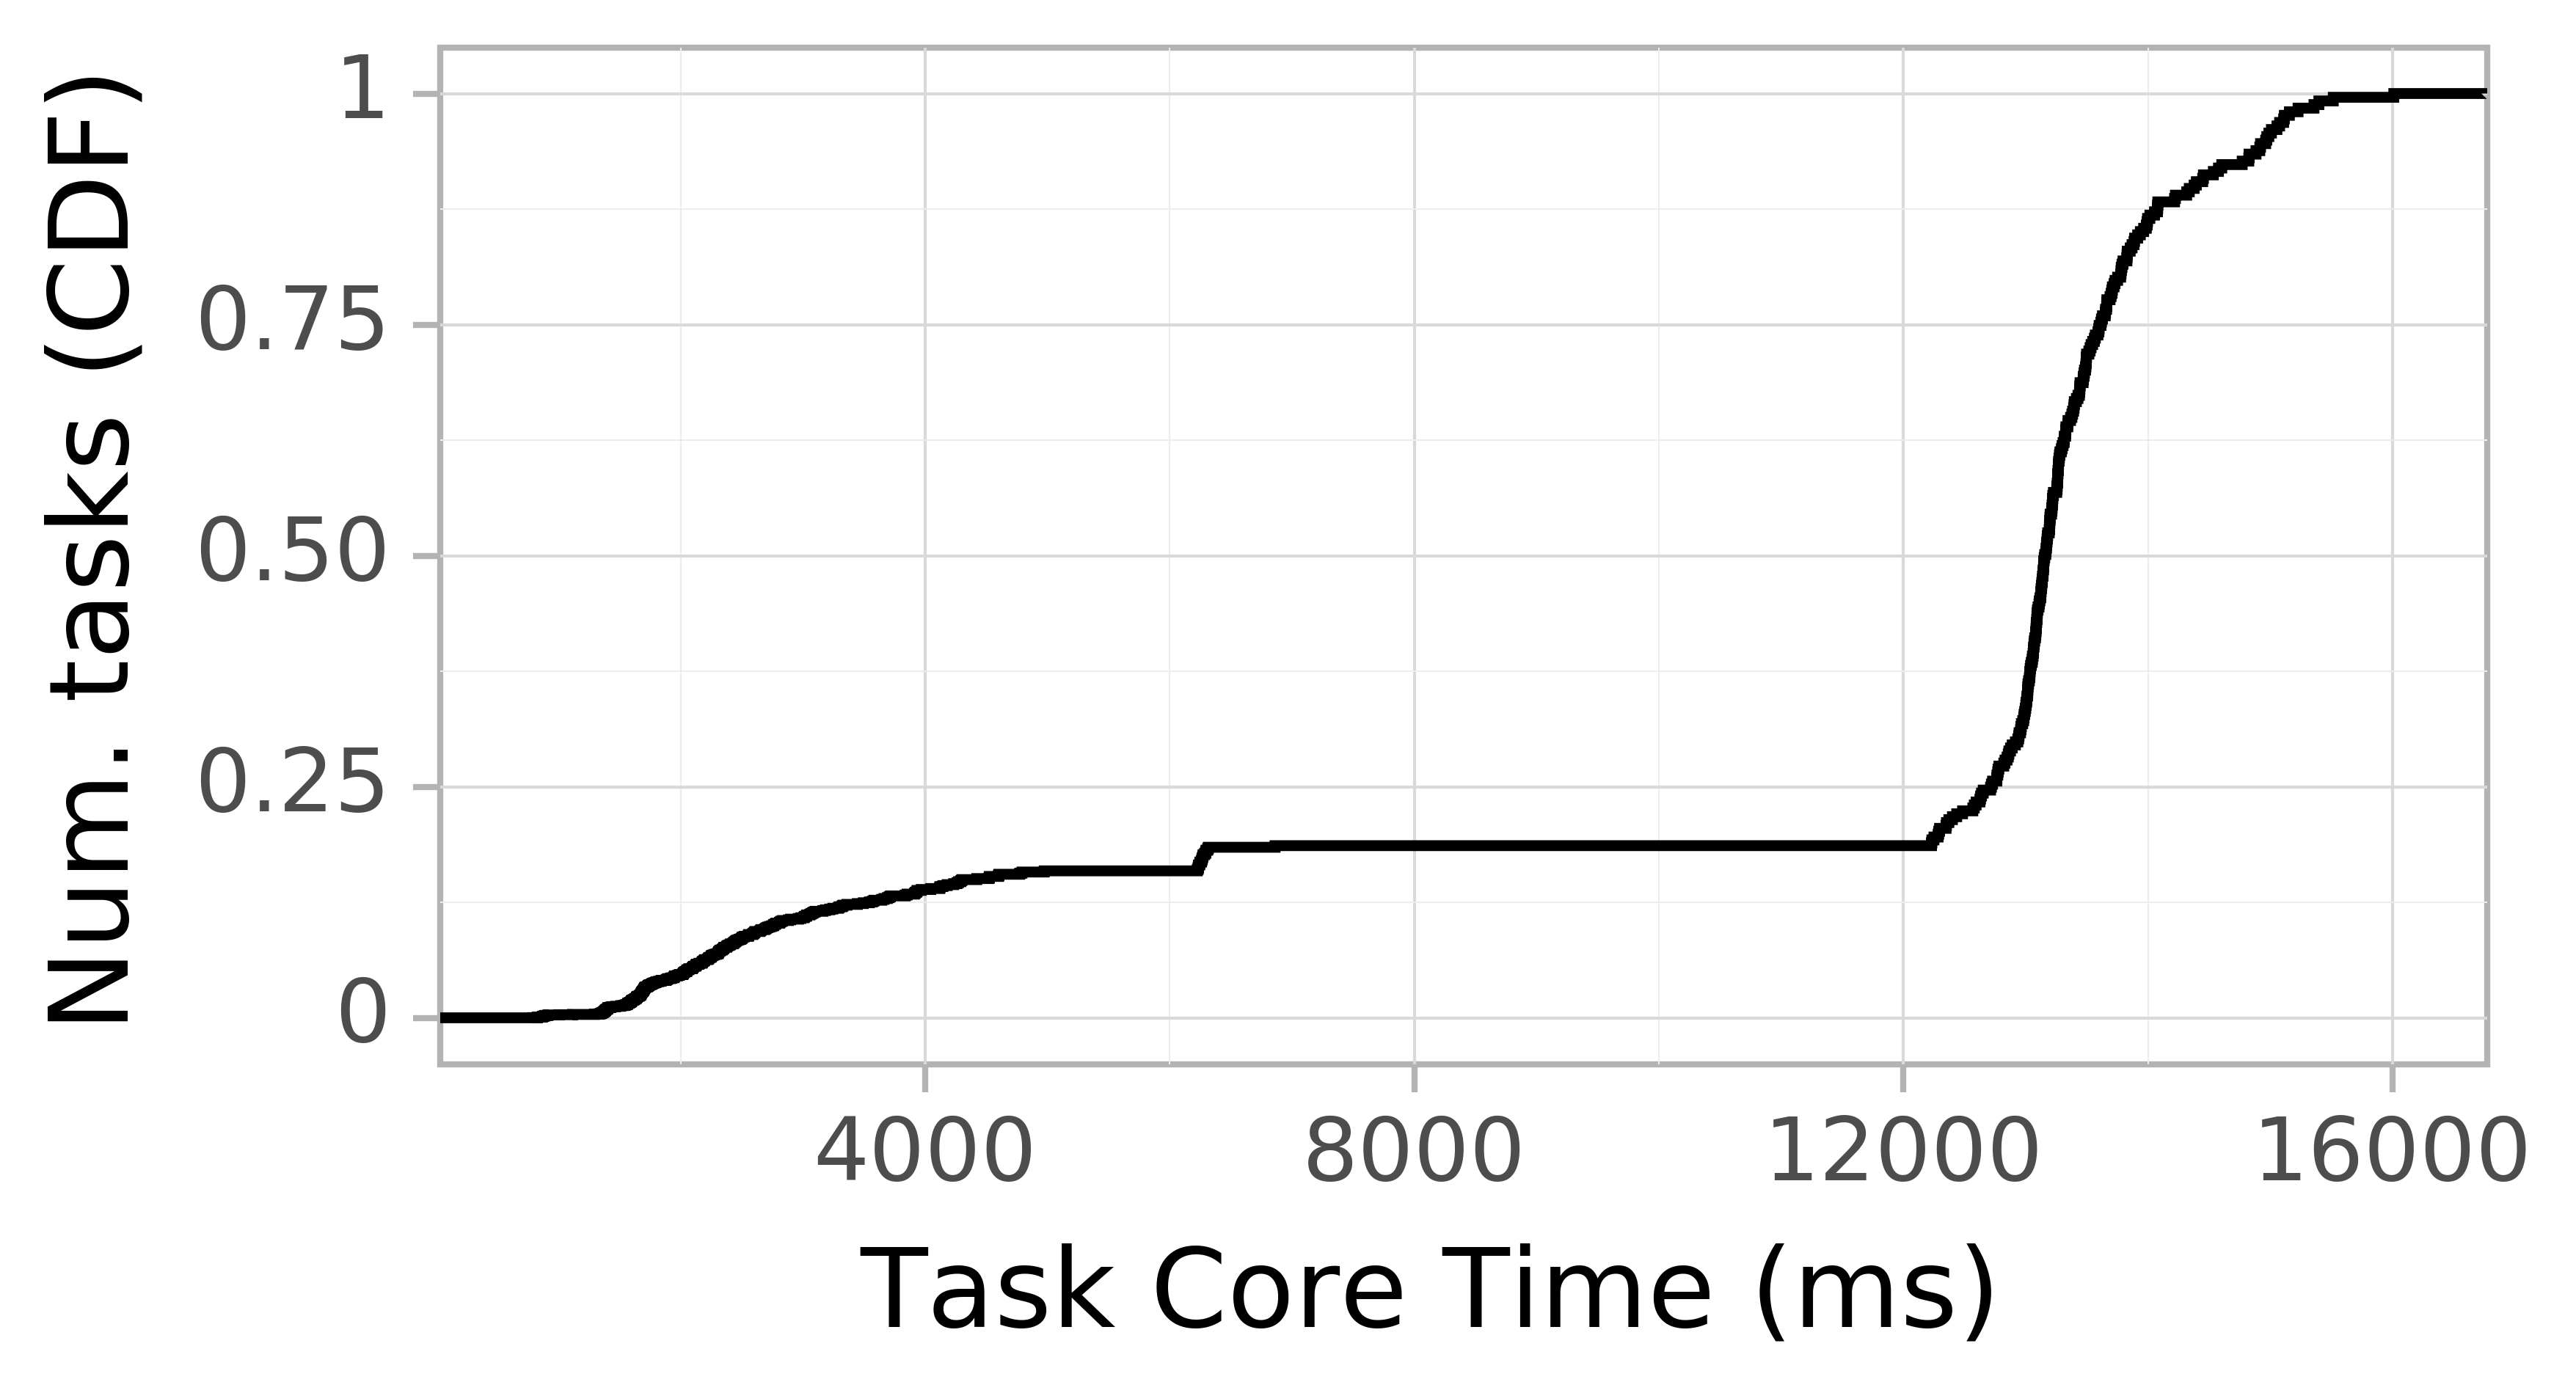 task resource time CDF graph for the askalon-new_ee8 trace.